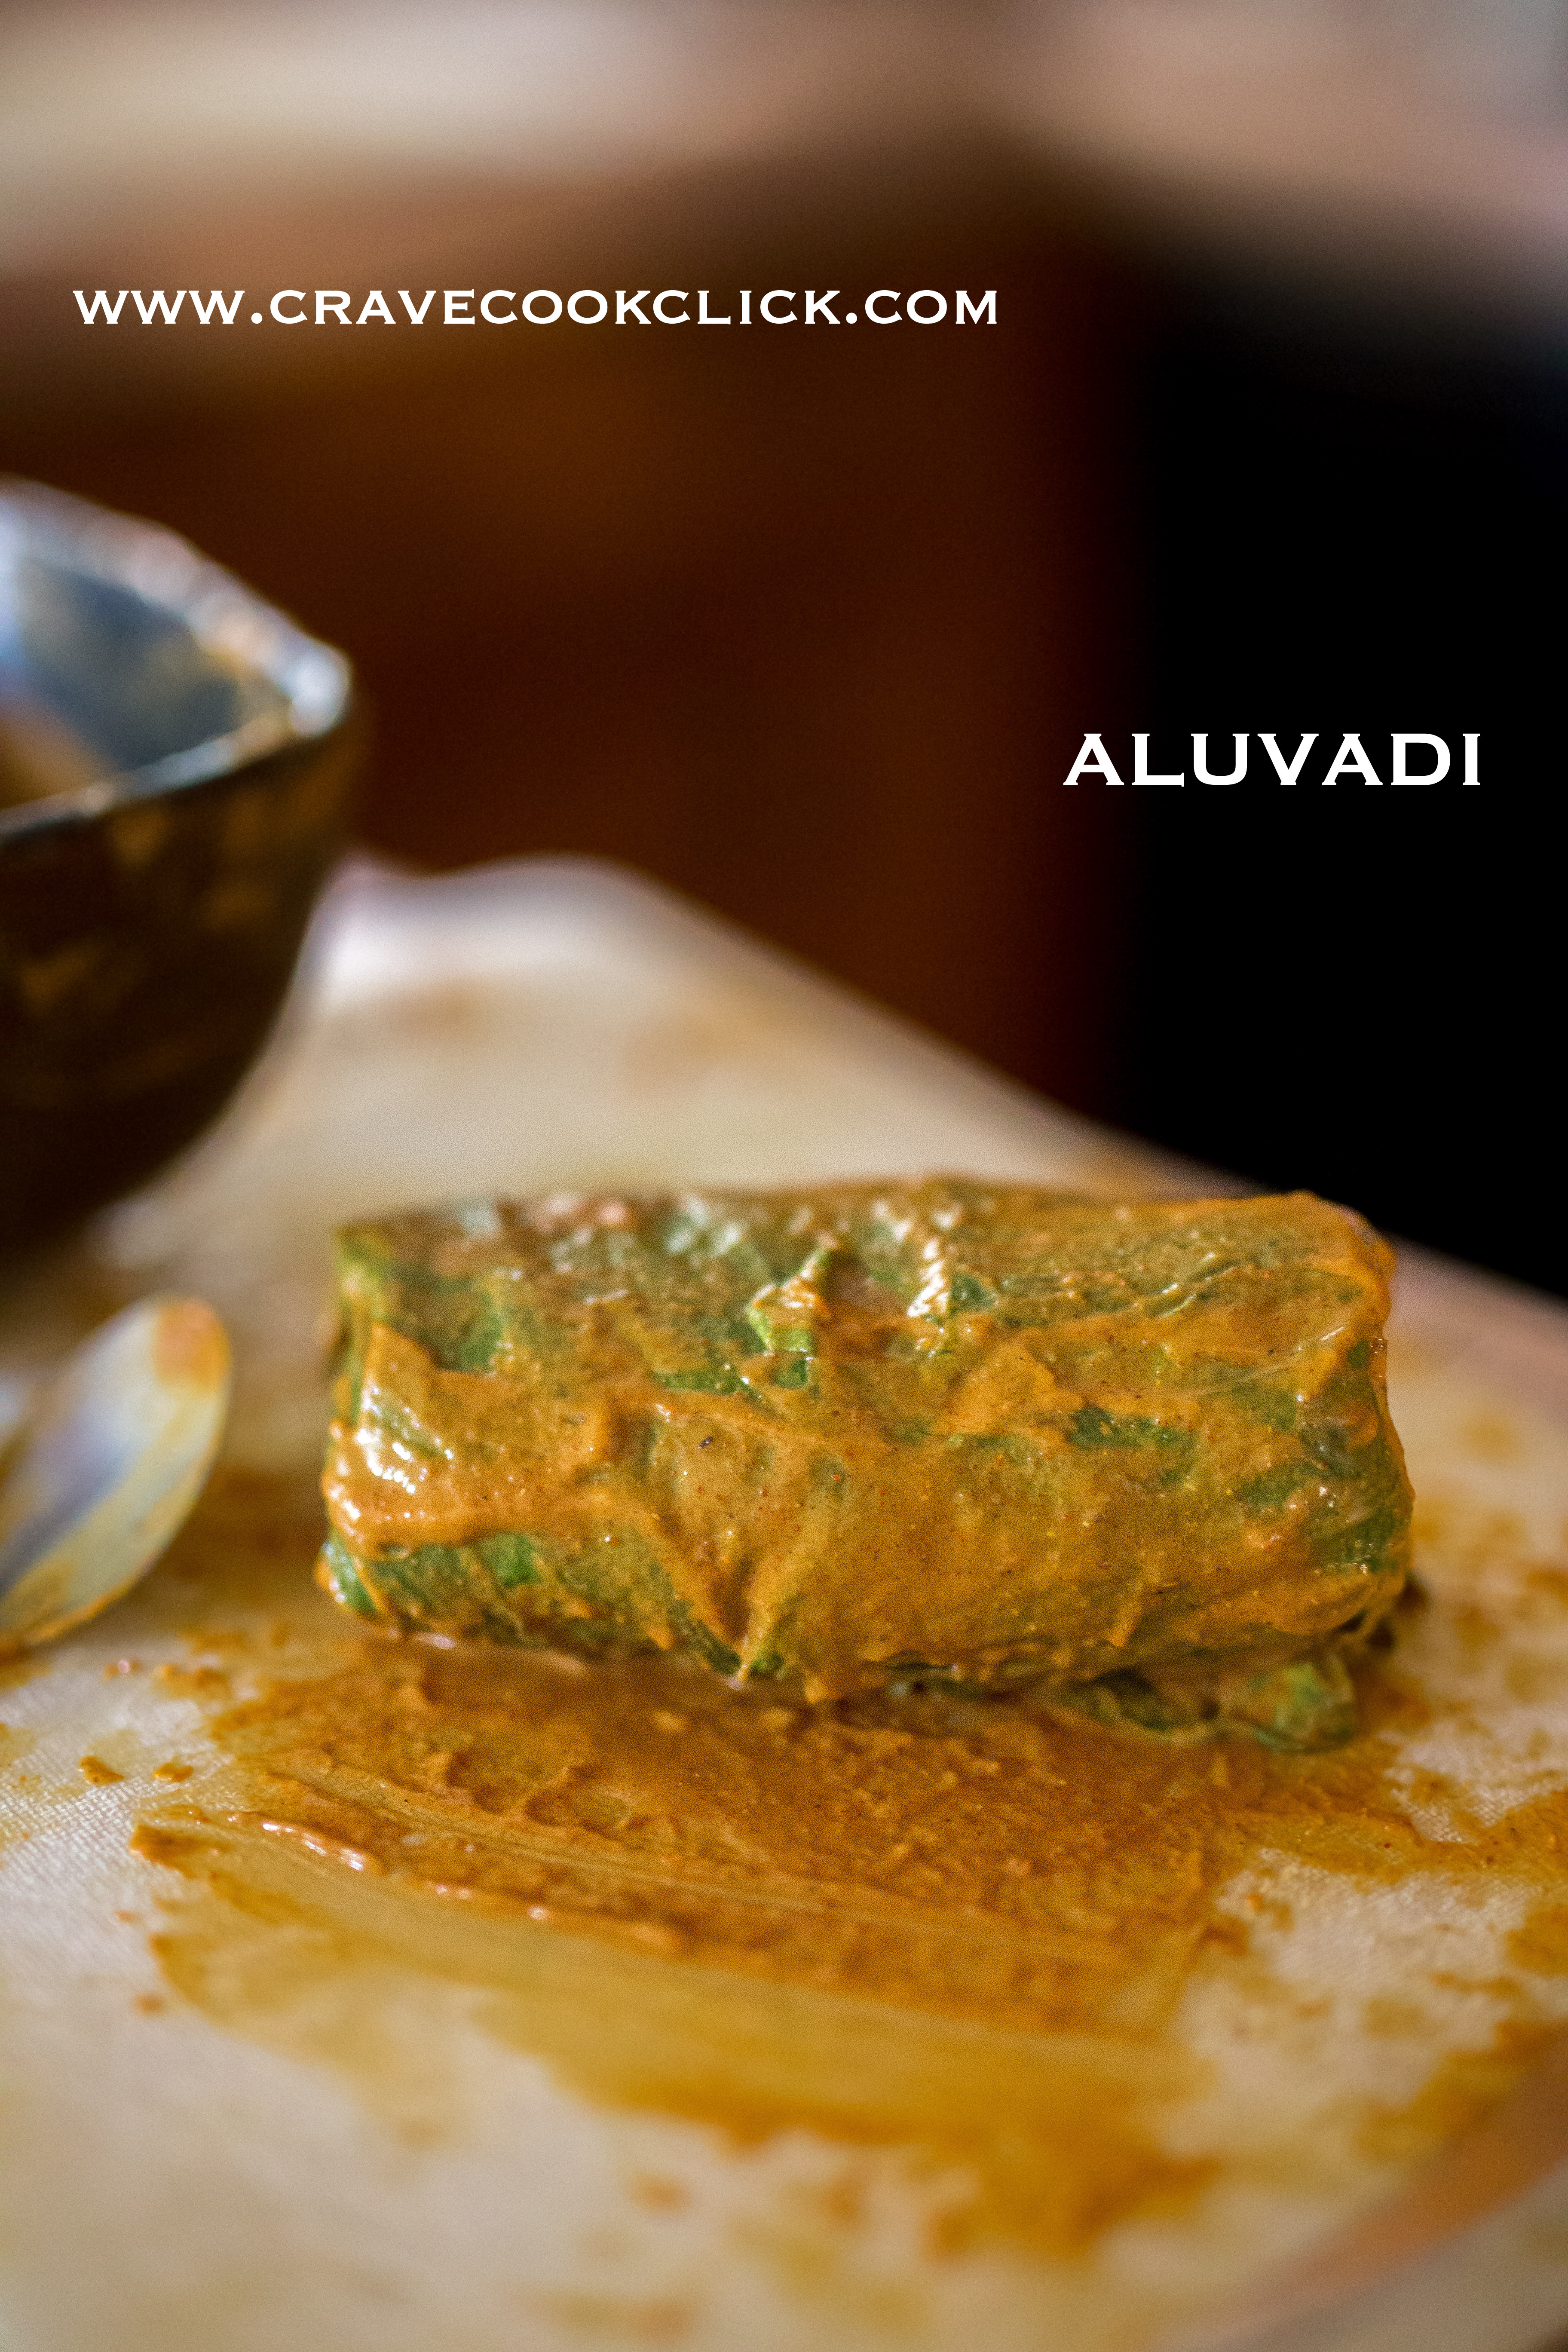 Aluvadi recipe, how to make patra